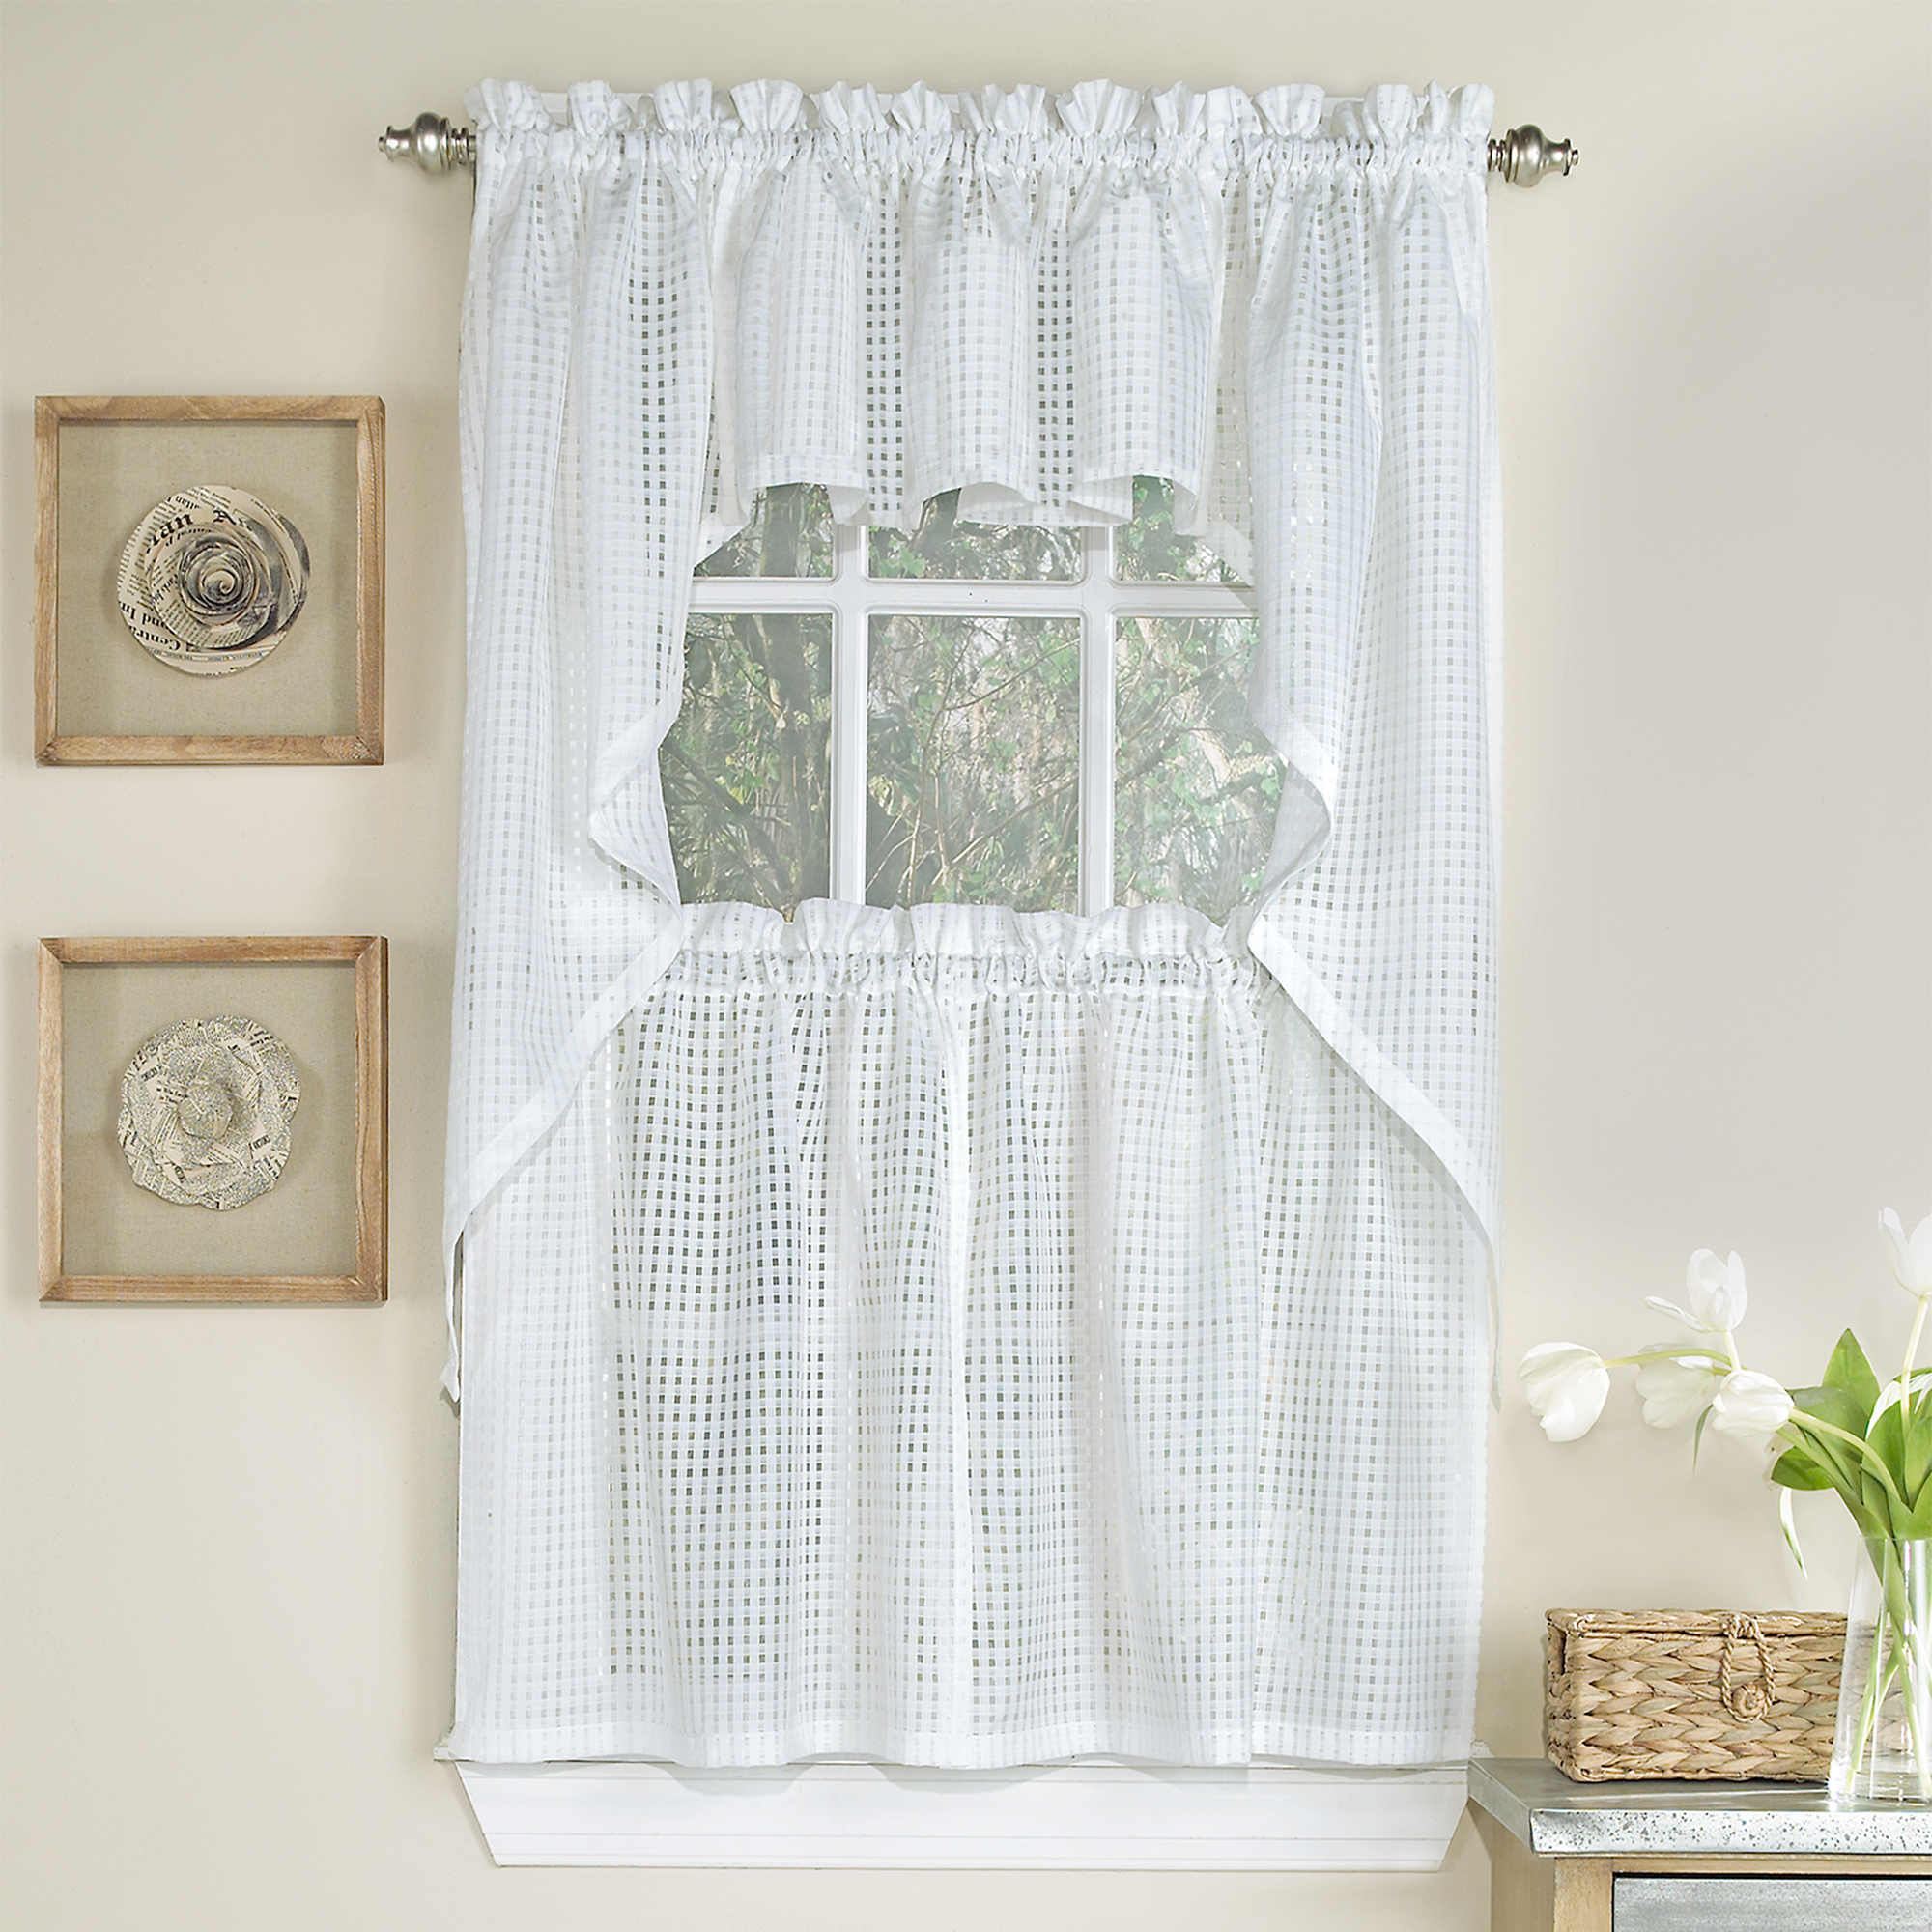 Details About Micro Check 2 Tone White Semi Sheer Window Curtain Tiers, Valance, Or Swag With Gray Barn Dogwood Floral Curtain Panel Pairs (View 13 of 20)